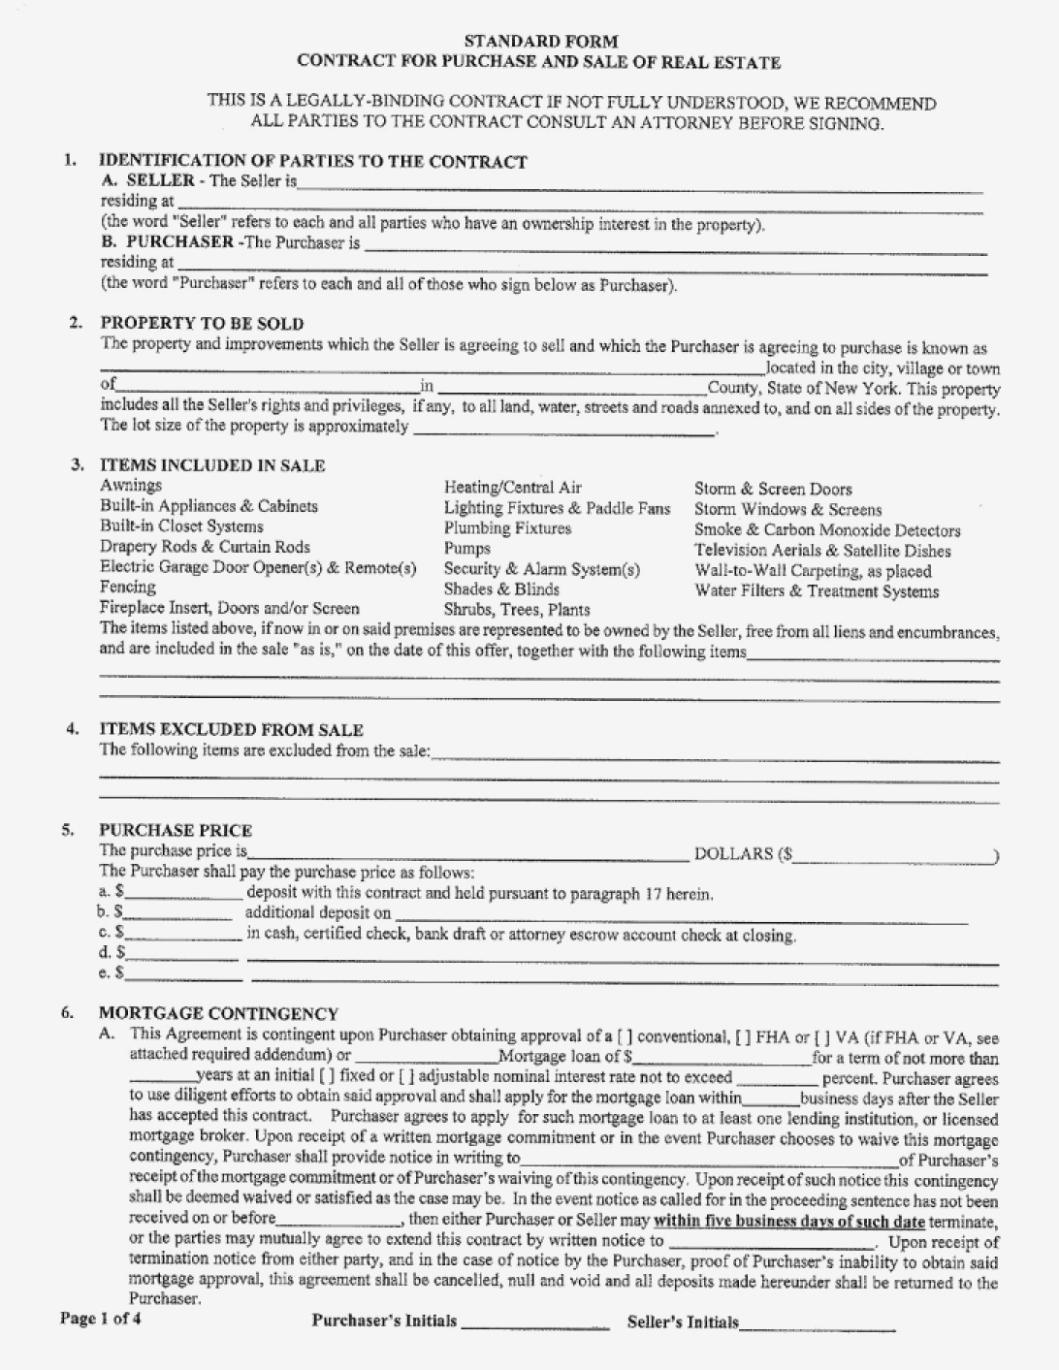 Florida Real Estate Purchase Offer Form